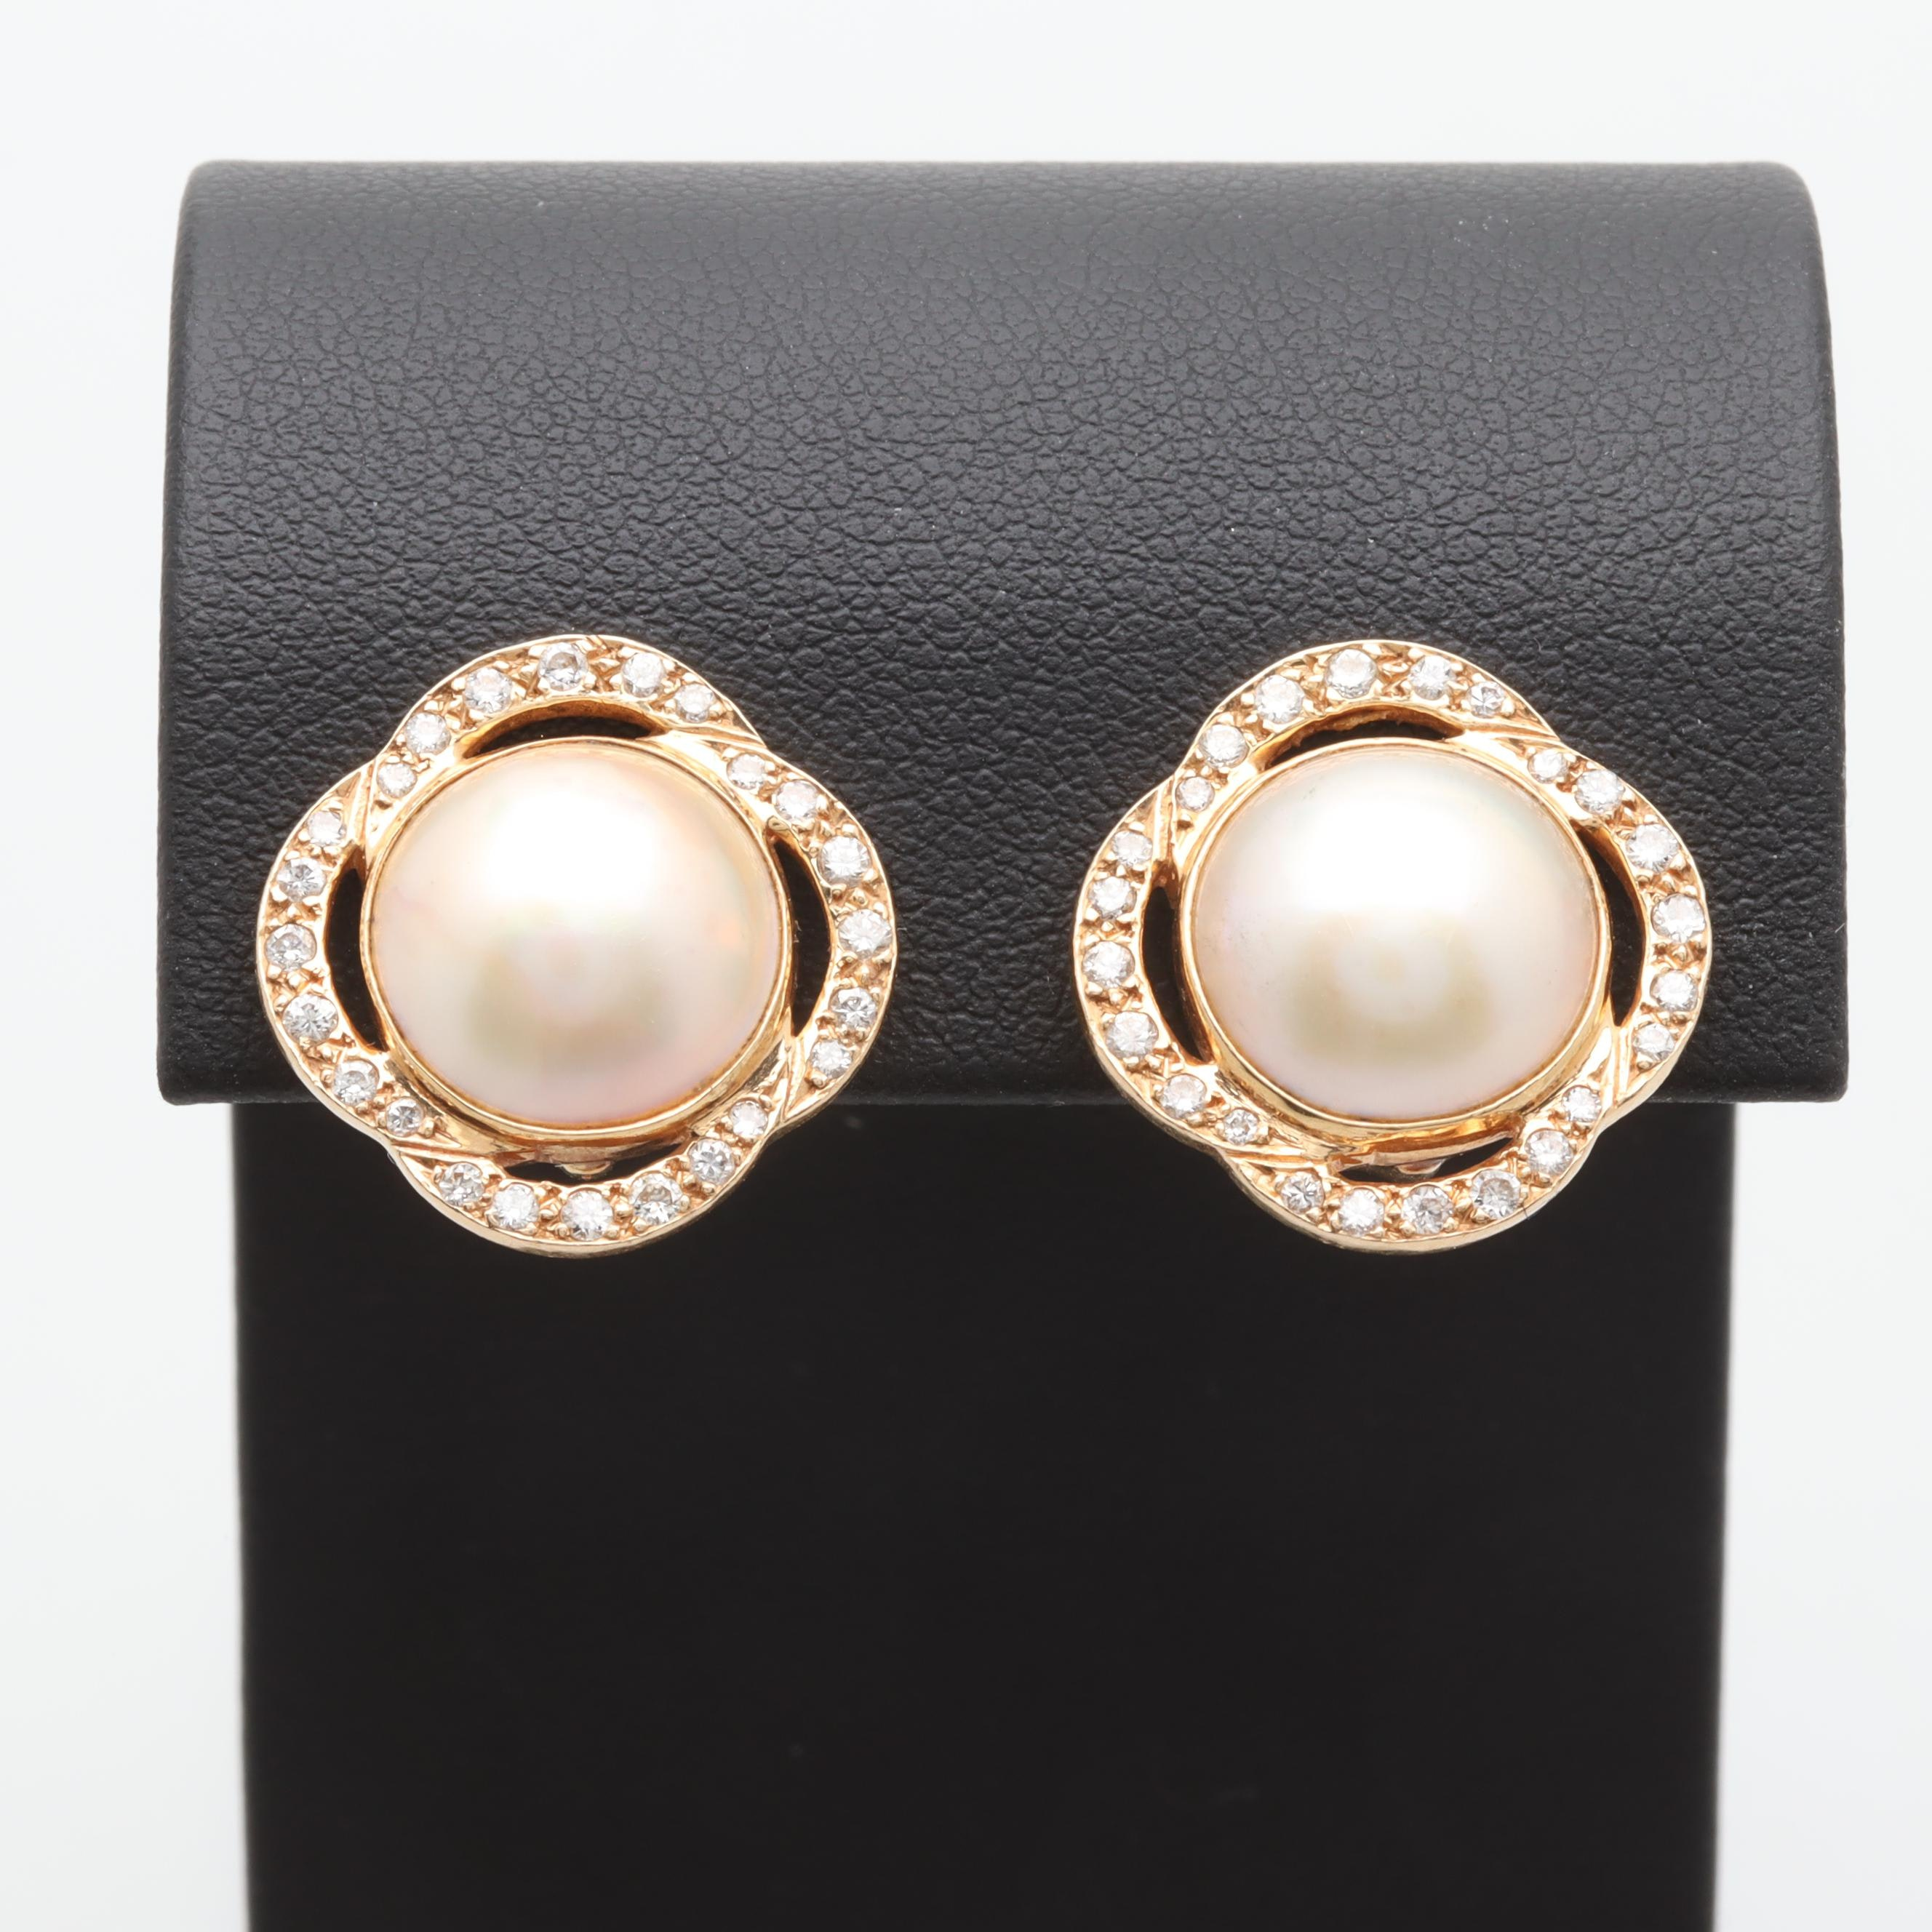 Esther Gallant 14K Yellow Gold Cultured Pearl and Diamond Earrings